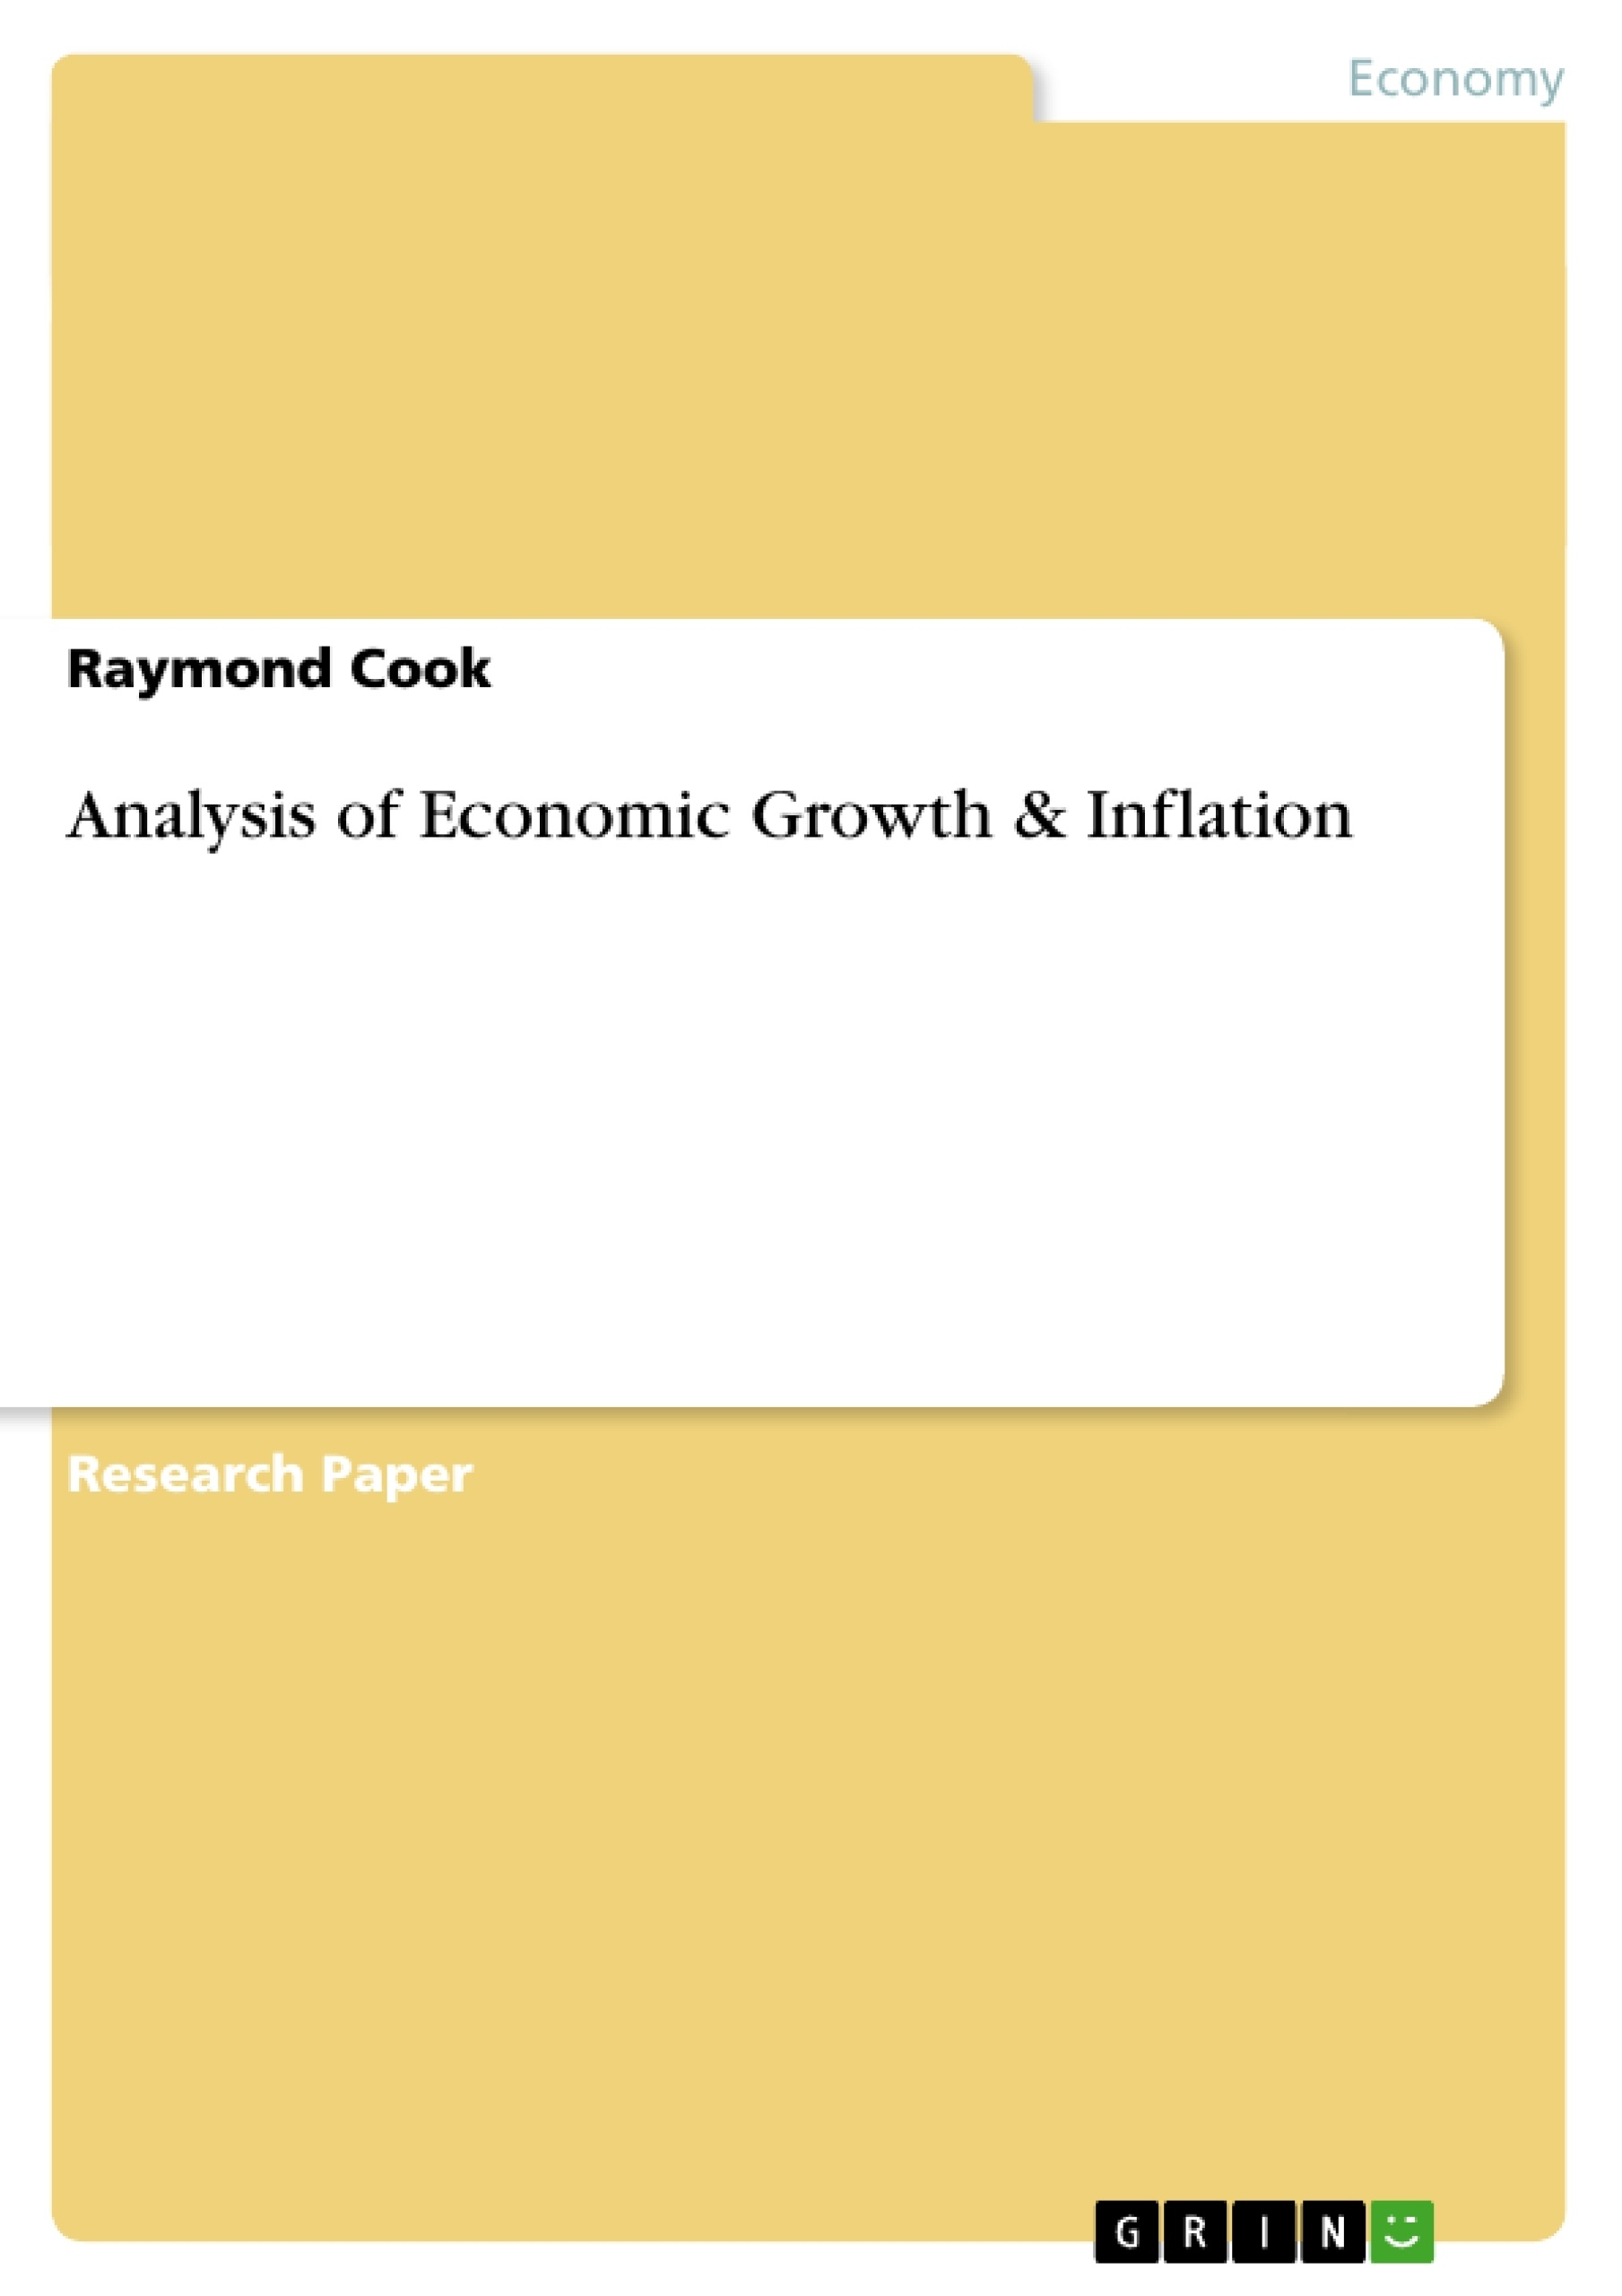 economy research paper